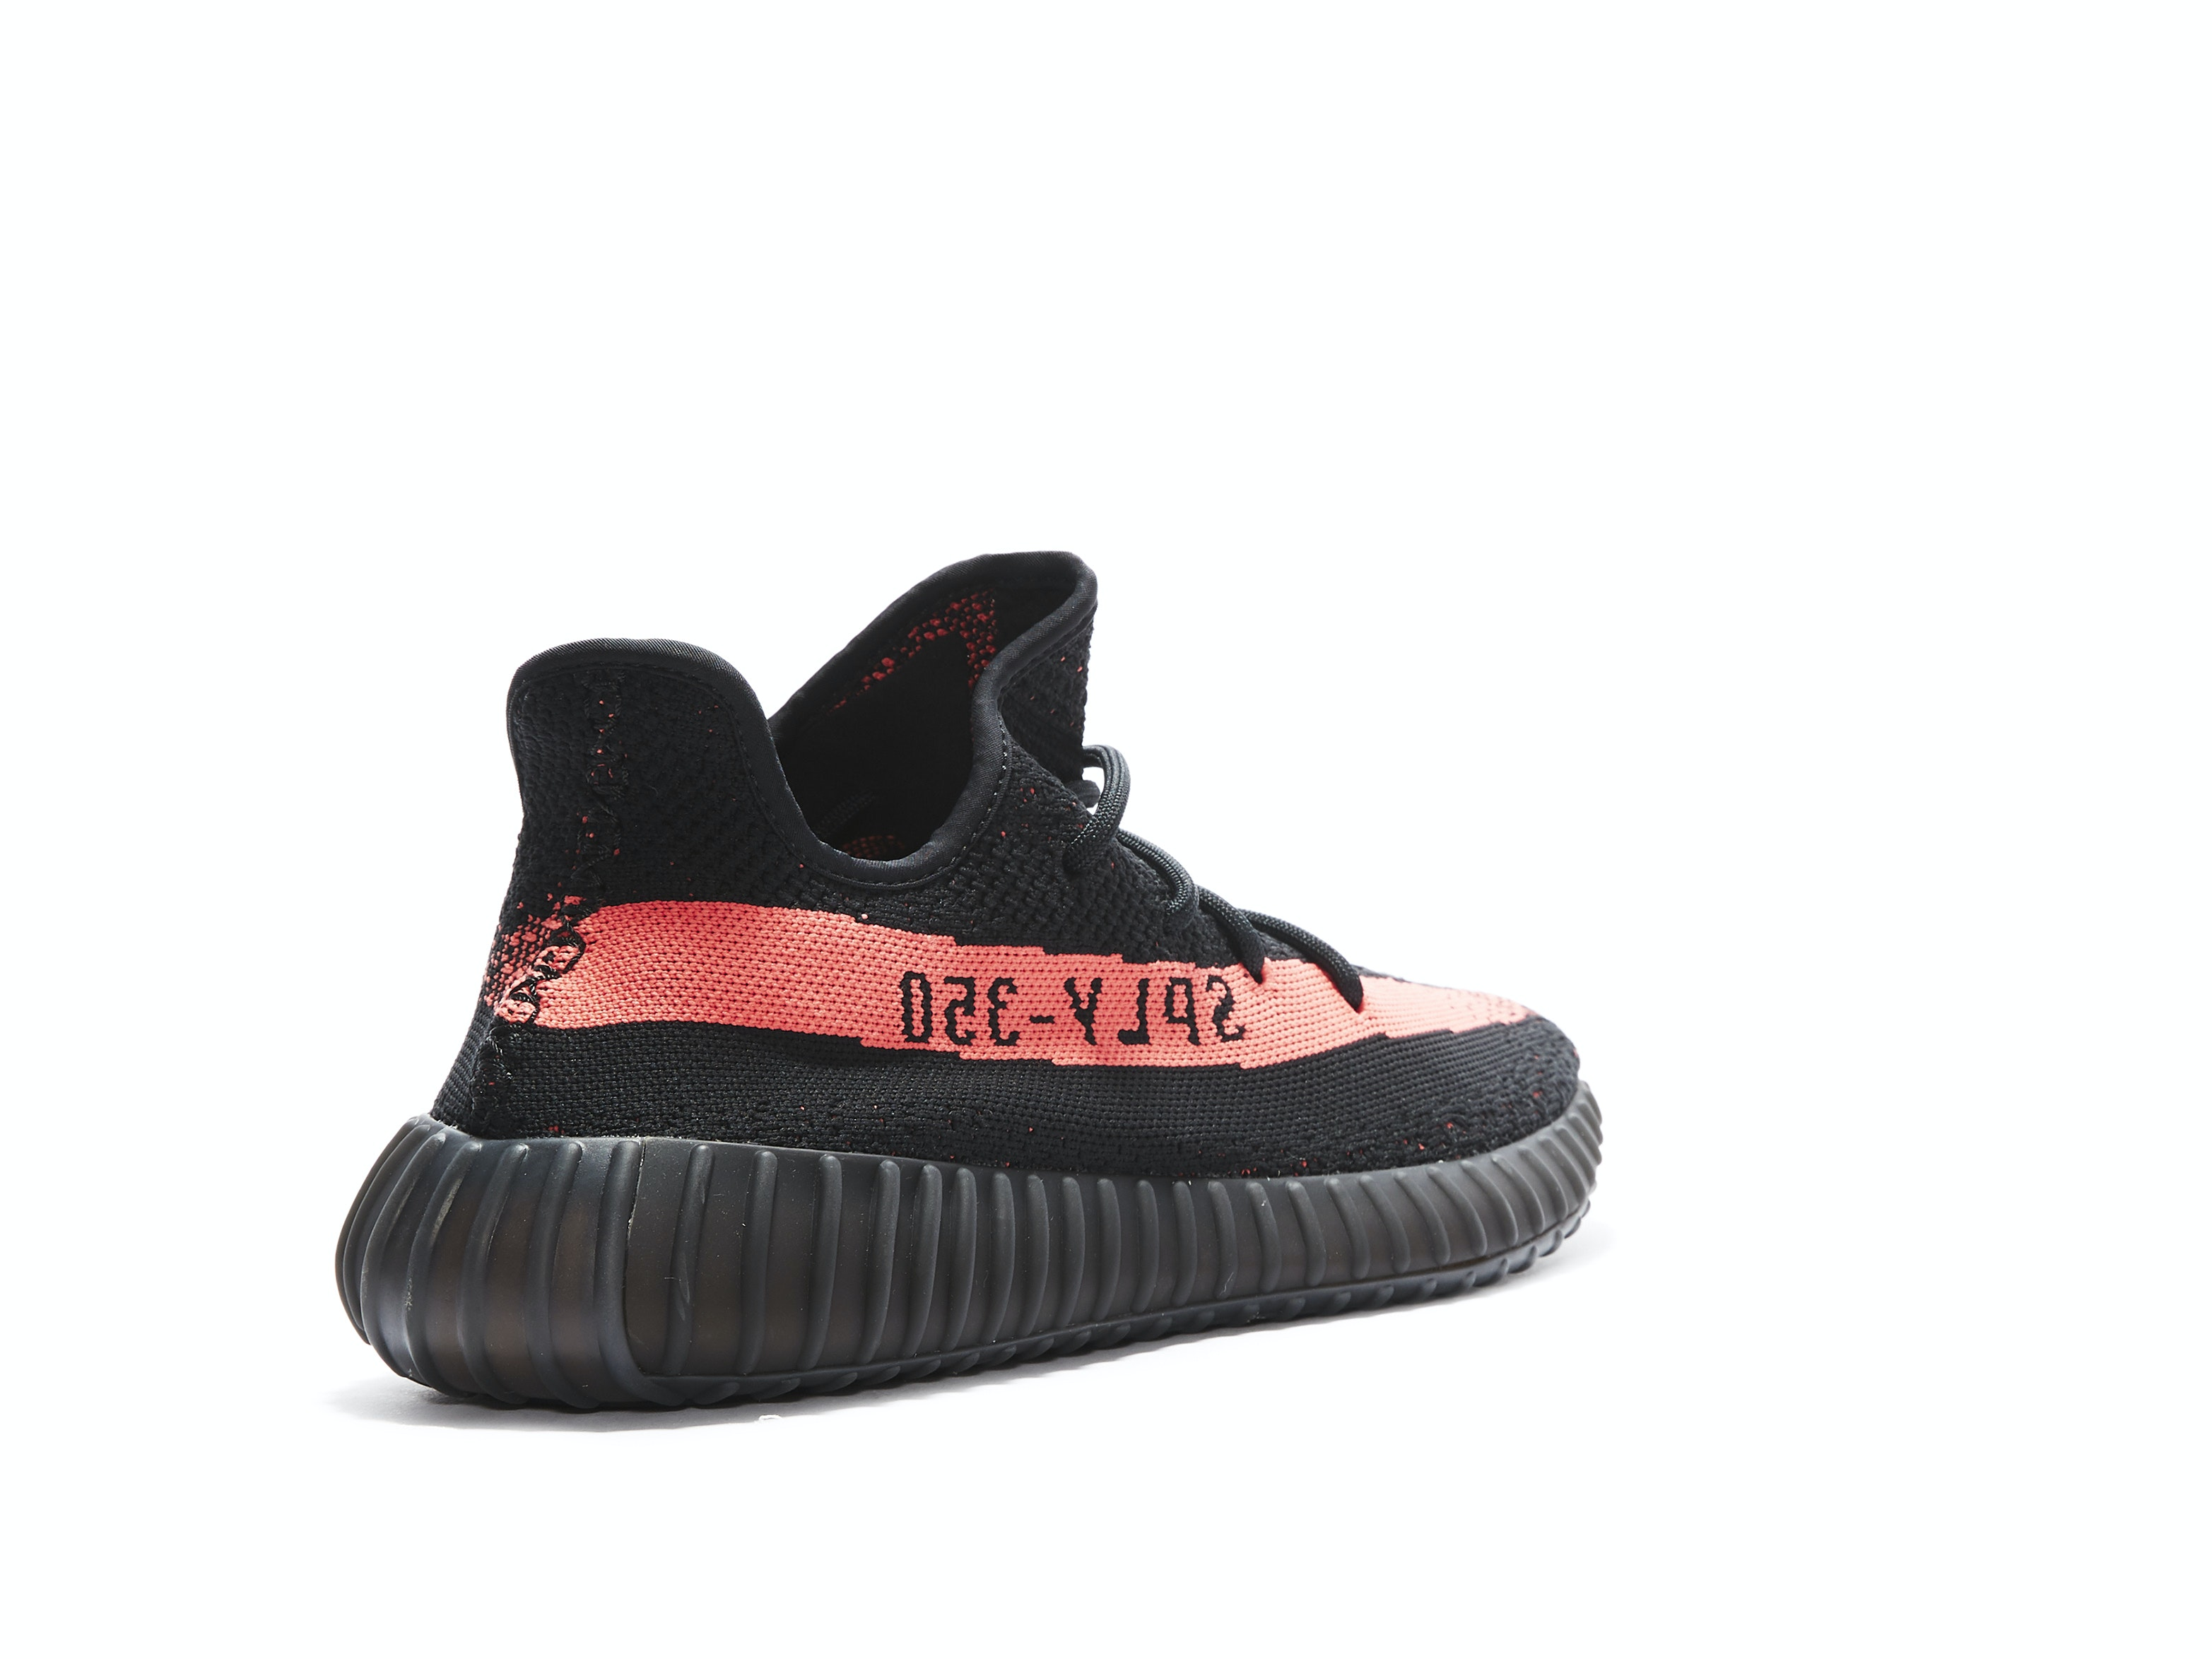 1c808cd5cb1bf Yeezy Boost 350 V2 Red. 100% AuthenticAvg Delivery Time  1-2 days. Adidas    BY9612